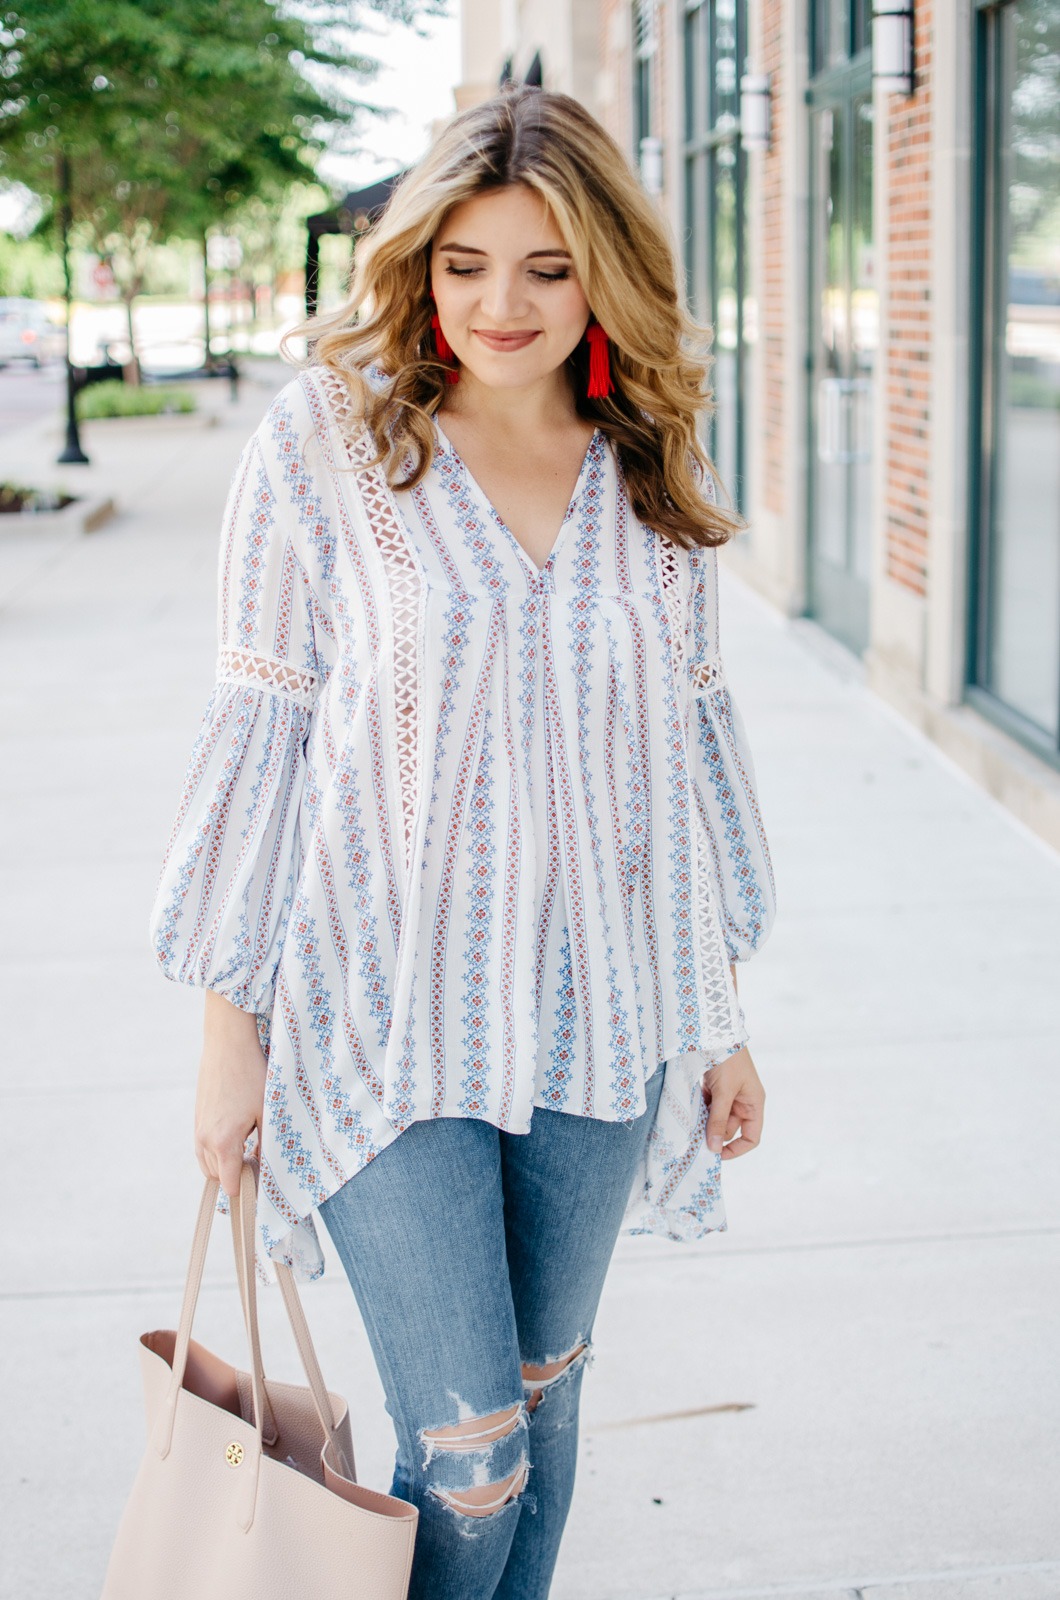 cute boho outfit for spring - the perfect boho top | For more cute casual outfit ideas, head to bylaurenm.com